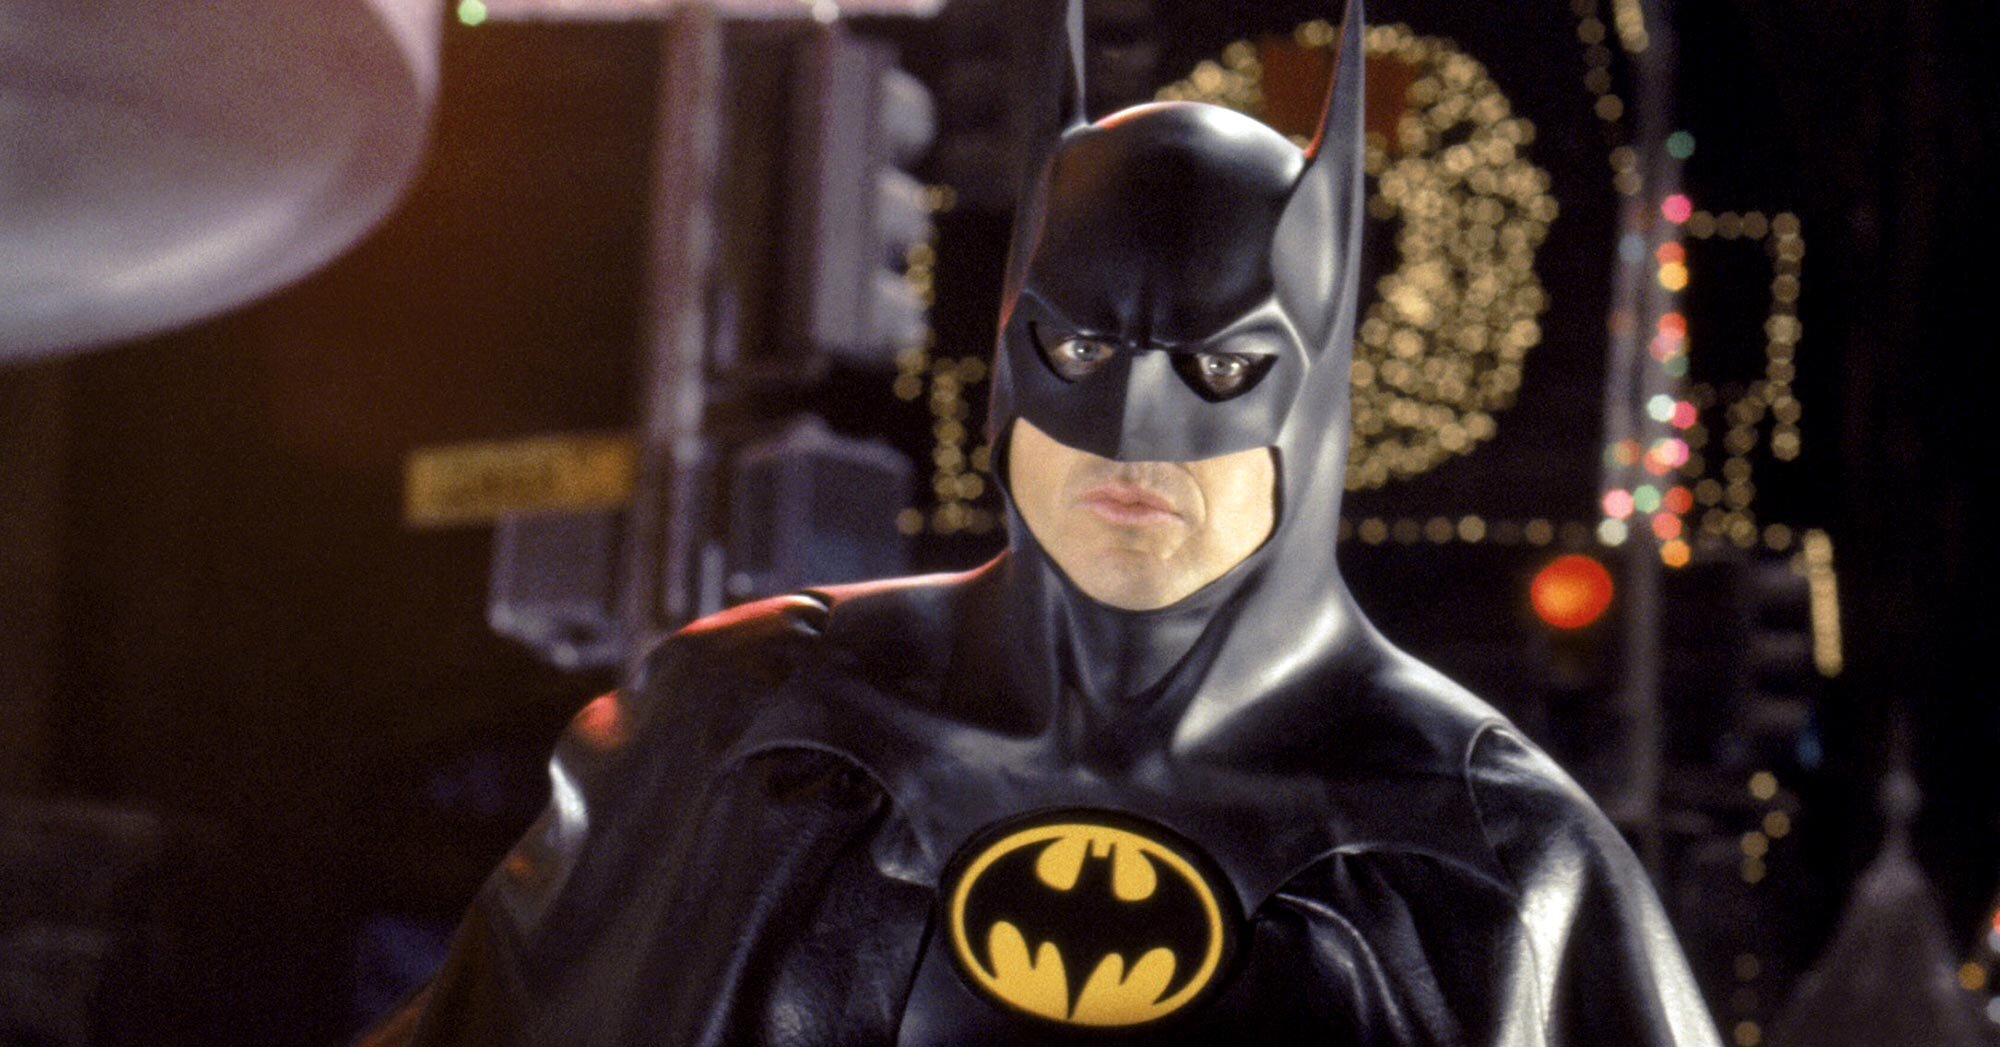 Michael Keaton declares himself the best Batman to Jimmy Kimmel